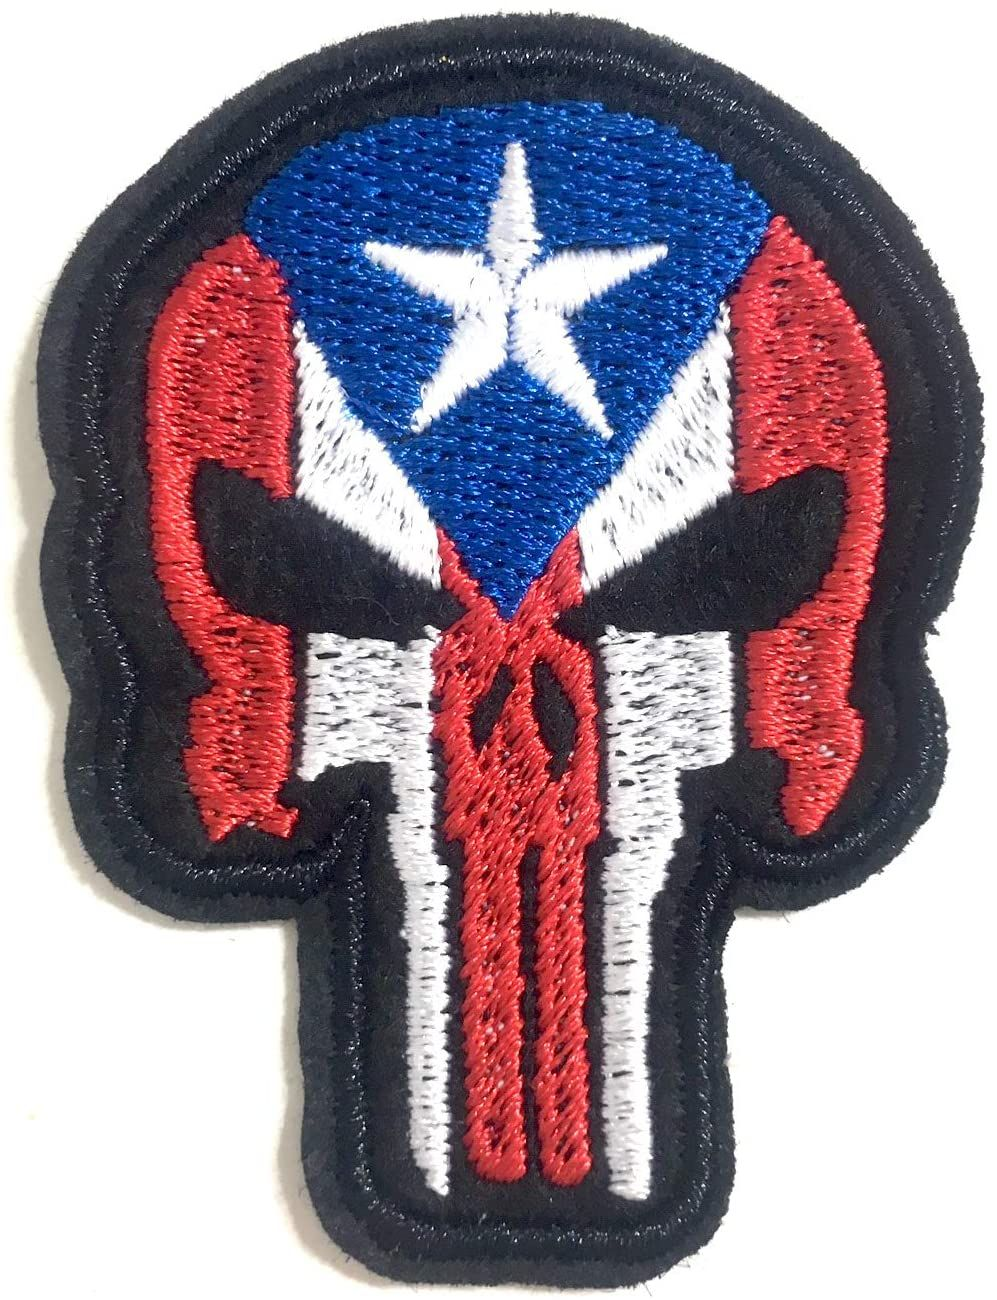 Puerto Rican Patches Clothing Accessories Easy Iron On Design Boricua Puerto Rico In 2020 Skull Patch Sew On Patches Skull Fashion